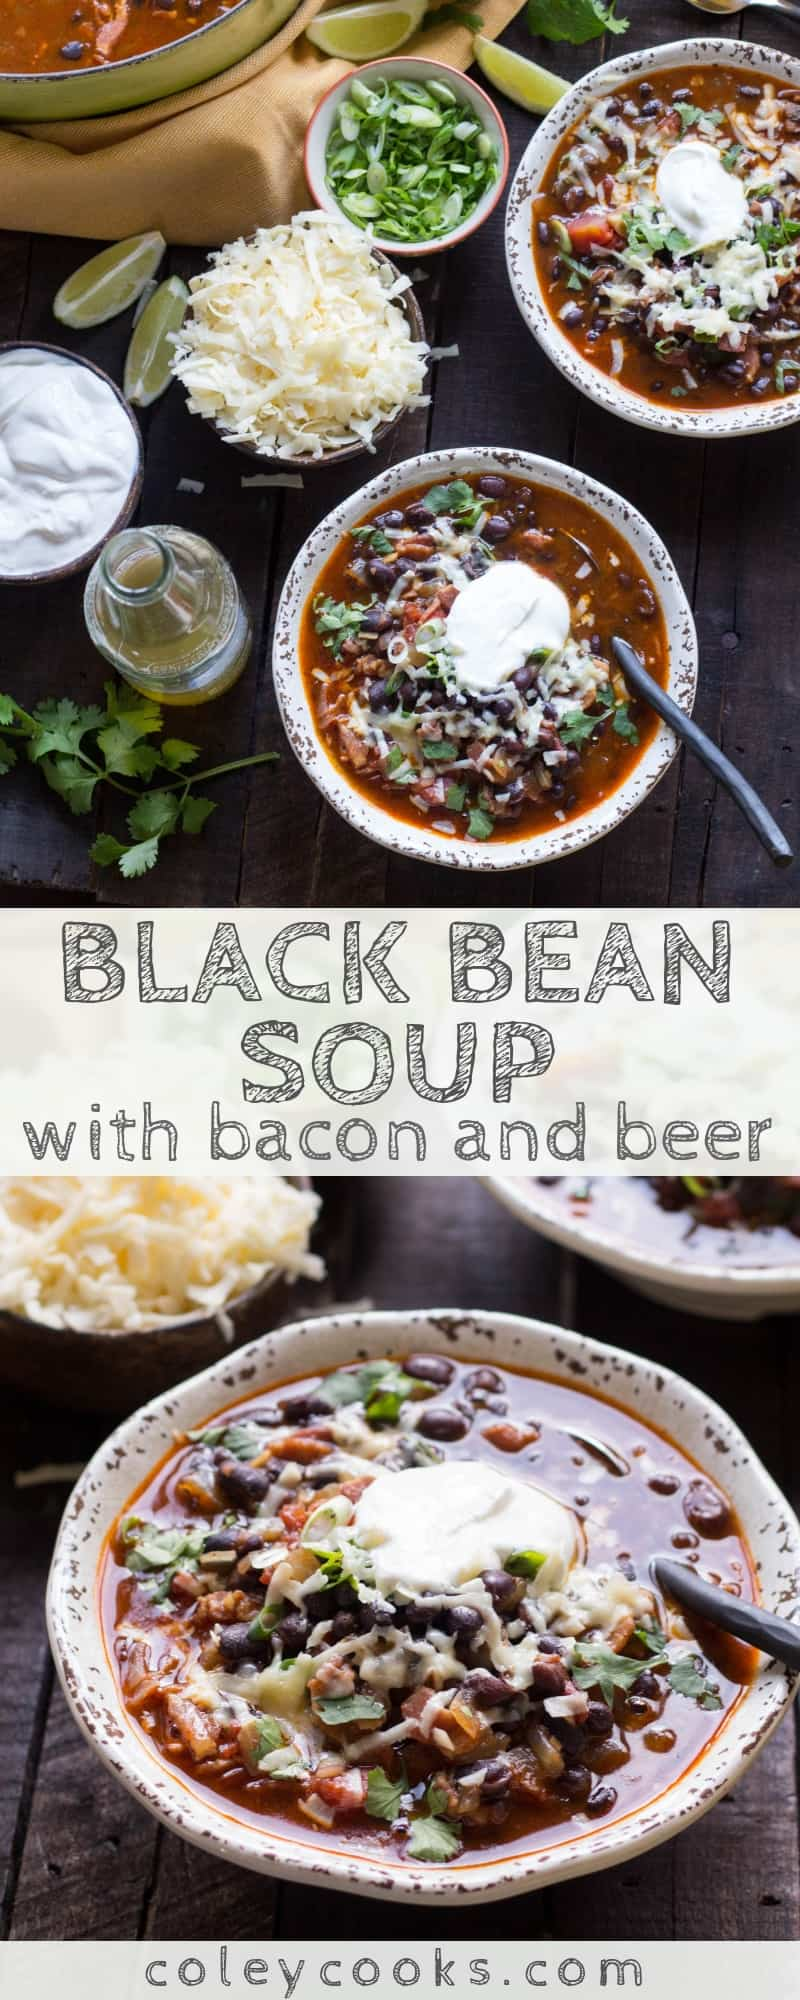 This Black Bean Soup with bacon + beer is so easy, super flavorful and perfect for watching football! Best recipe for Super Bowl Sunday! #easy #soup #recipe #bacon #beer #football #superbowl #beans #texmex